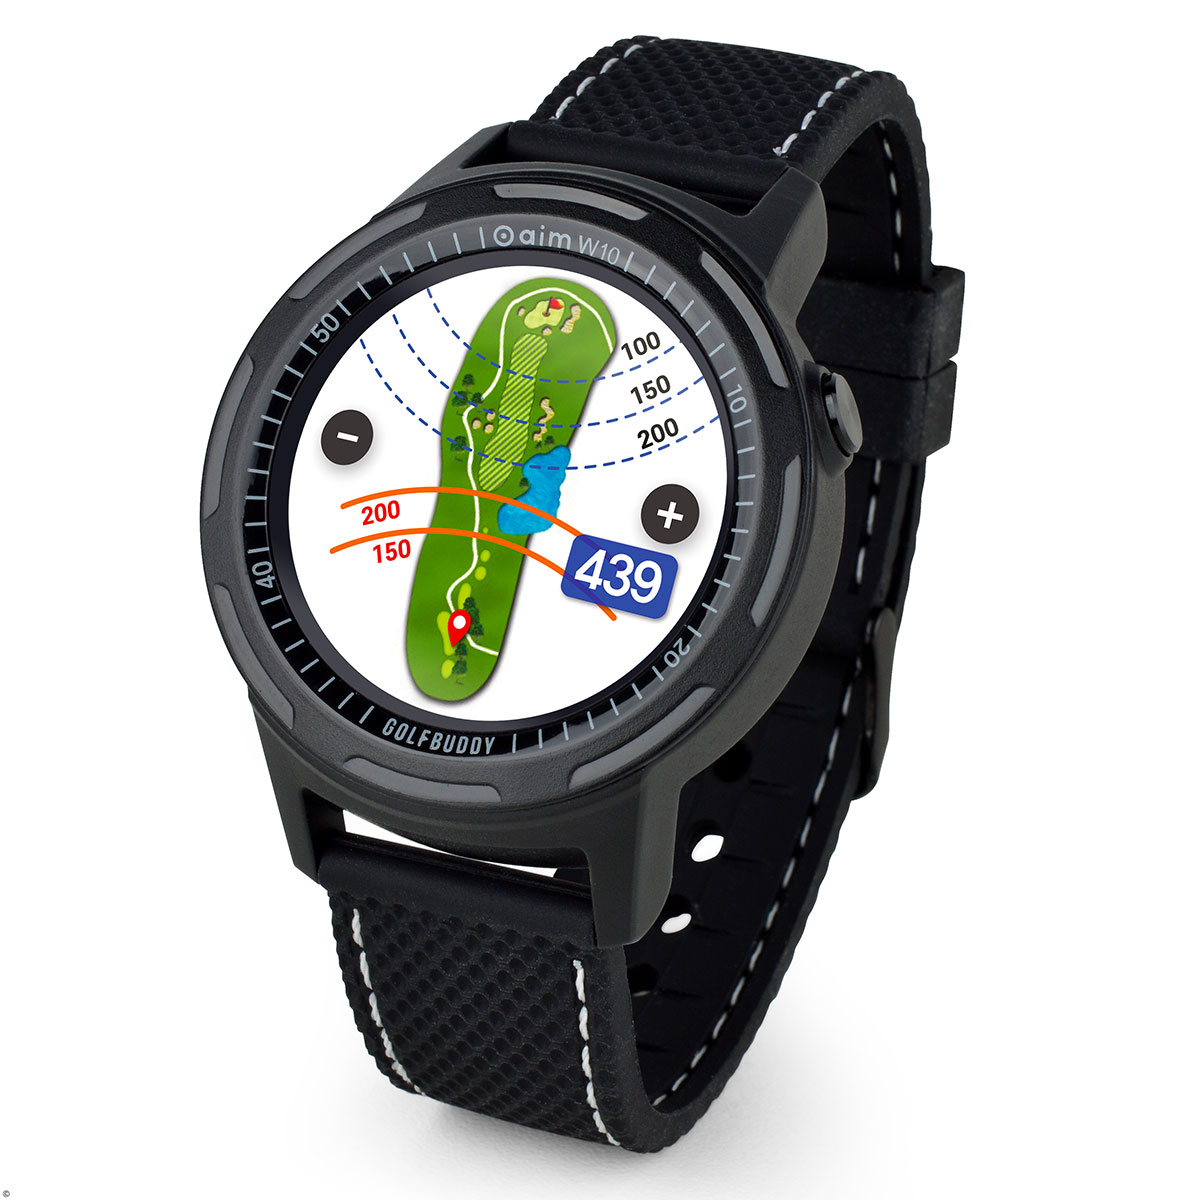 GolfBuddy aim W10 GPS Watch from american golf